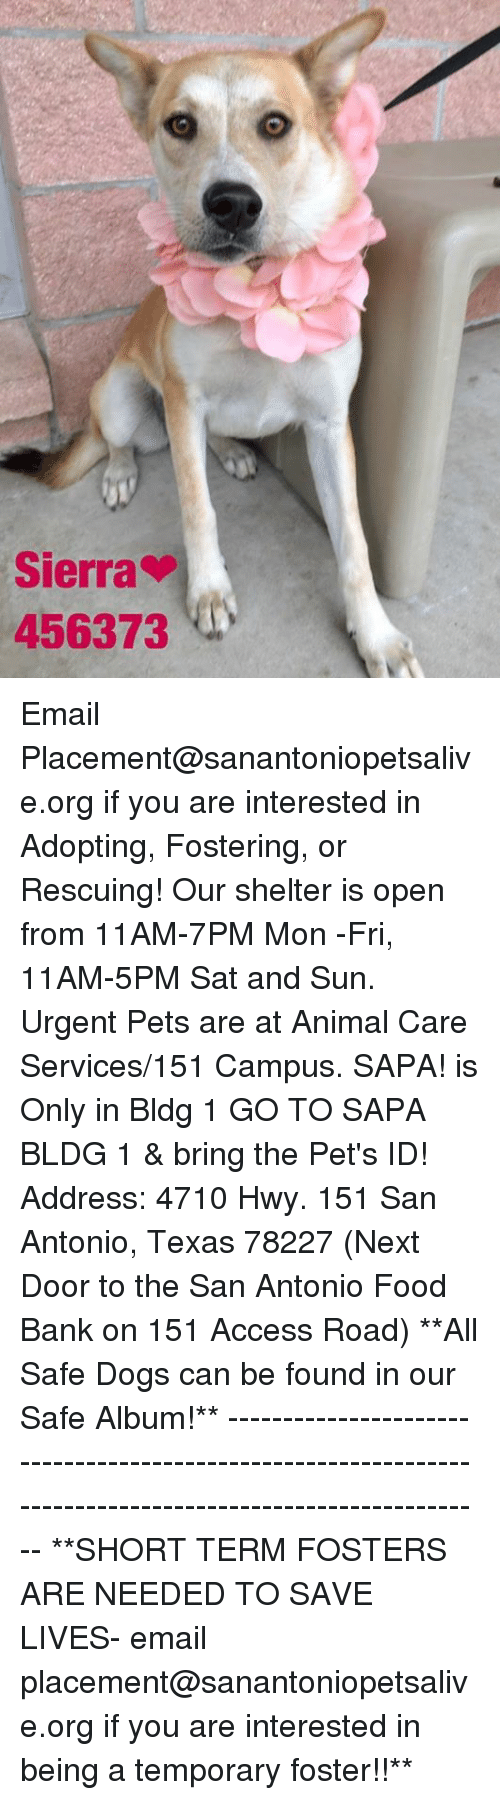 Dogs, Food, and Memes: Sierra  456373 Email Placement@sanantoniopetsalive.org if you are interested in Adopting, Fostering, or Rescuing!  Our shelter is open from 11AM-7PM Mon -Fri, 11AM-5PM Sat and Sun.  Urgent Pets are at Animal Care Services/151 Campus. SAPA! is Only in Bldg 1 GO TO SAPA BLDG 1 & bring the Pet's ID! Address: 4710 Hwy. 151 San Antonio, Texas 78227 (Next Door to the San Antonio Food Bank on 151 Access Road)  **All Safe Dogs can be found in our Safe Album!** ---------------------------------------------------------------------------------------------------------- **SHORT TERM FOSTERS ARE NEEDED TO SAVE LIVES- email placement@sanantoniopetsalive.org if you are interested in being a temporary foster!!**